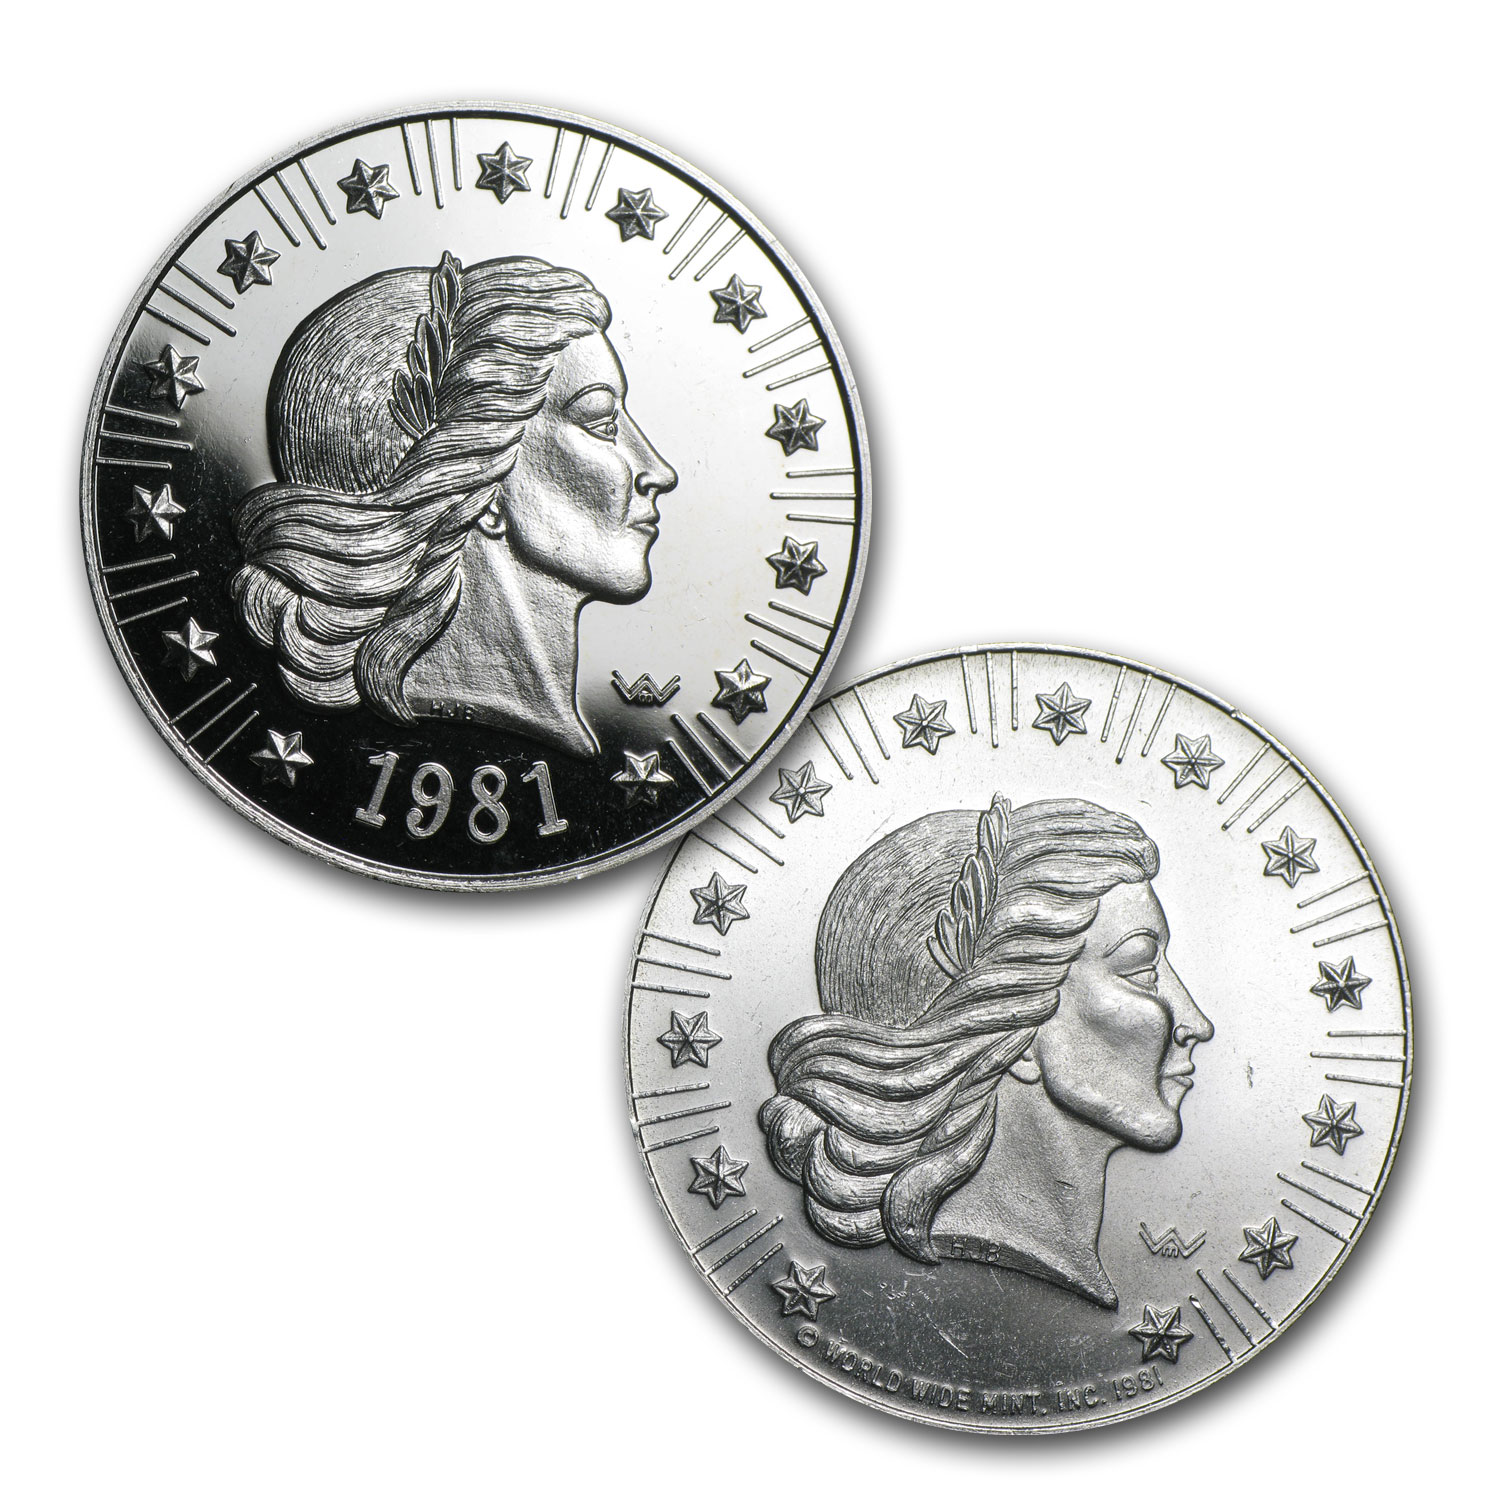 1 oz Silver Rounds - World Wide Mint (Liberty)